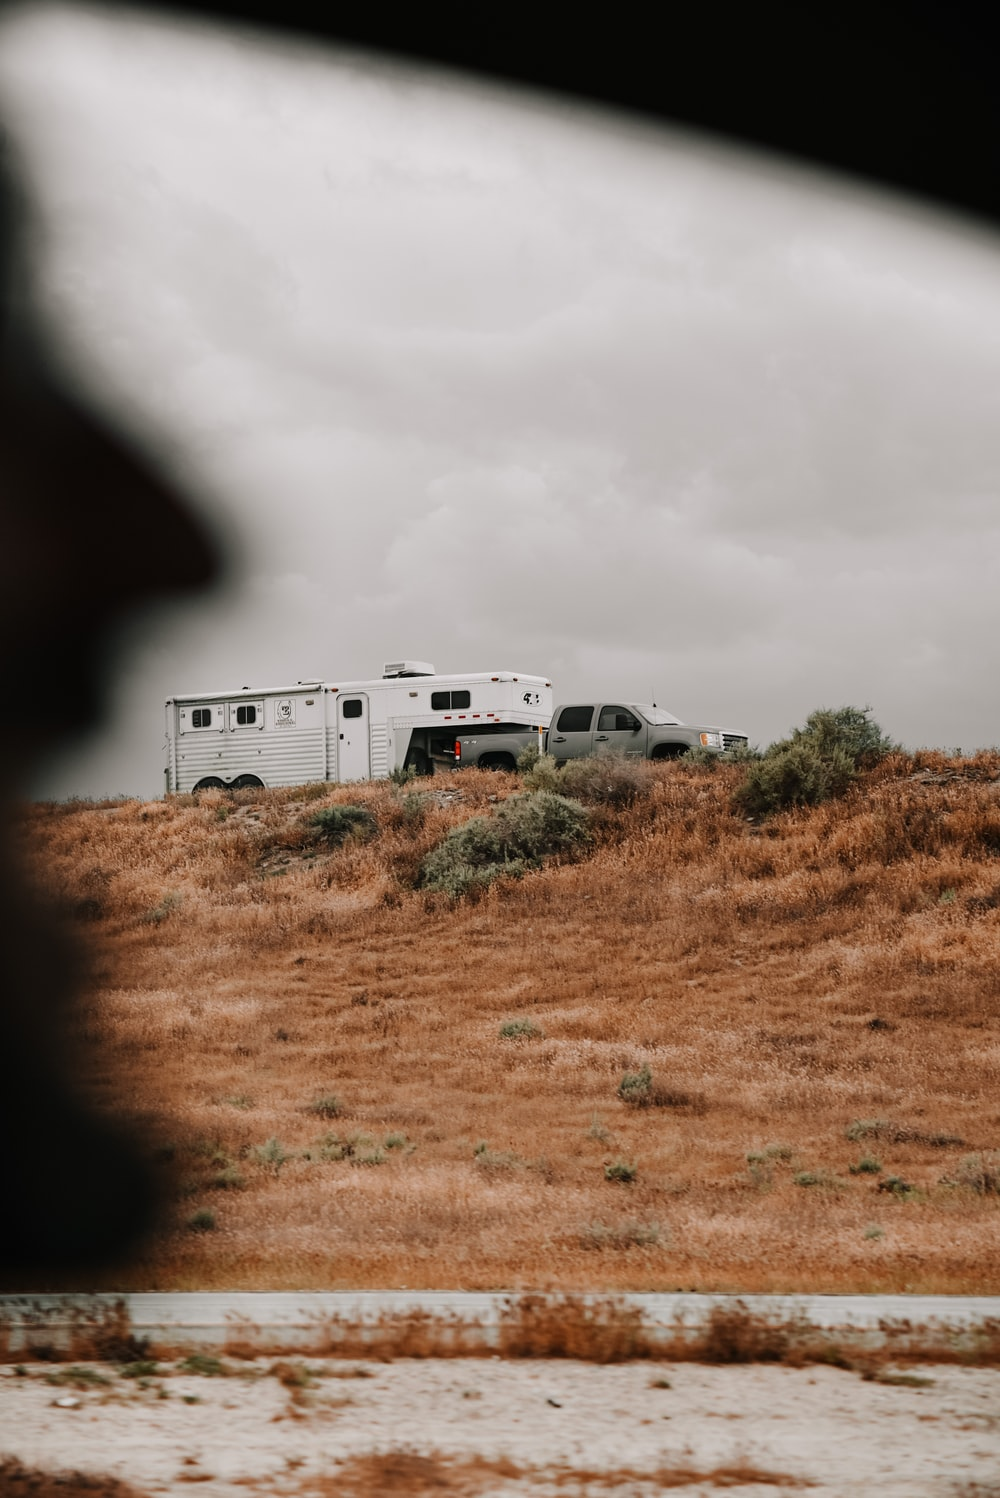 white rv trailer on brown grass field under gray cloudy sky during daytime